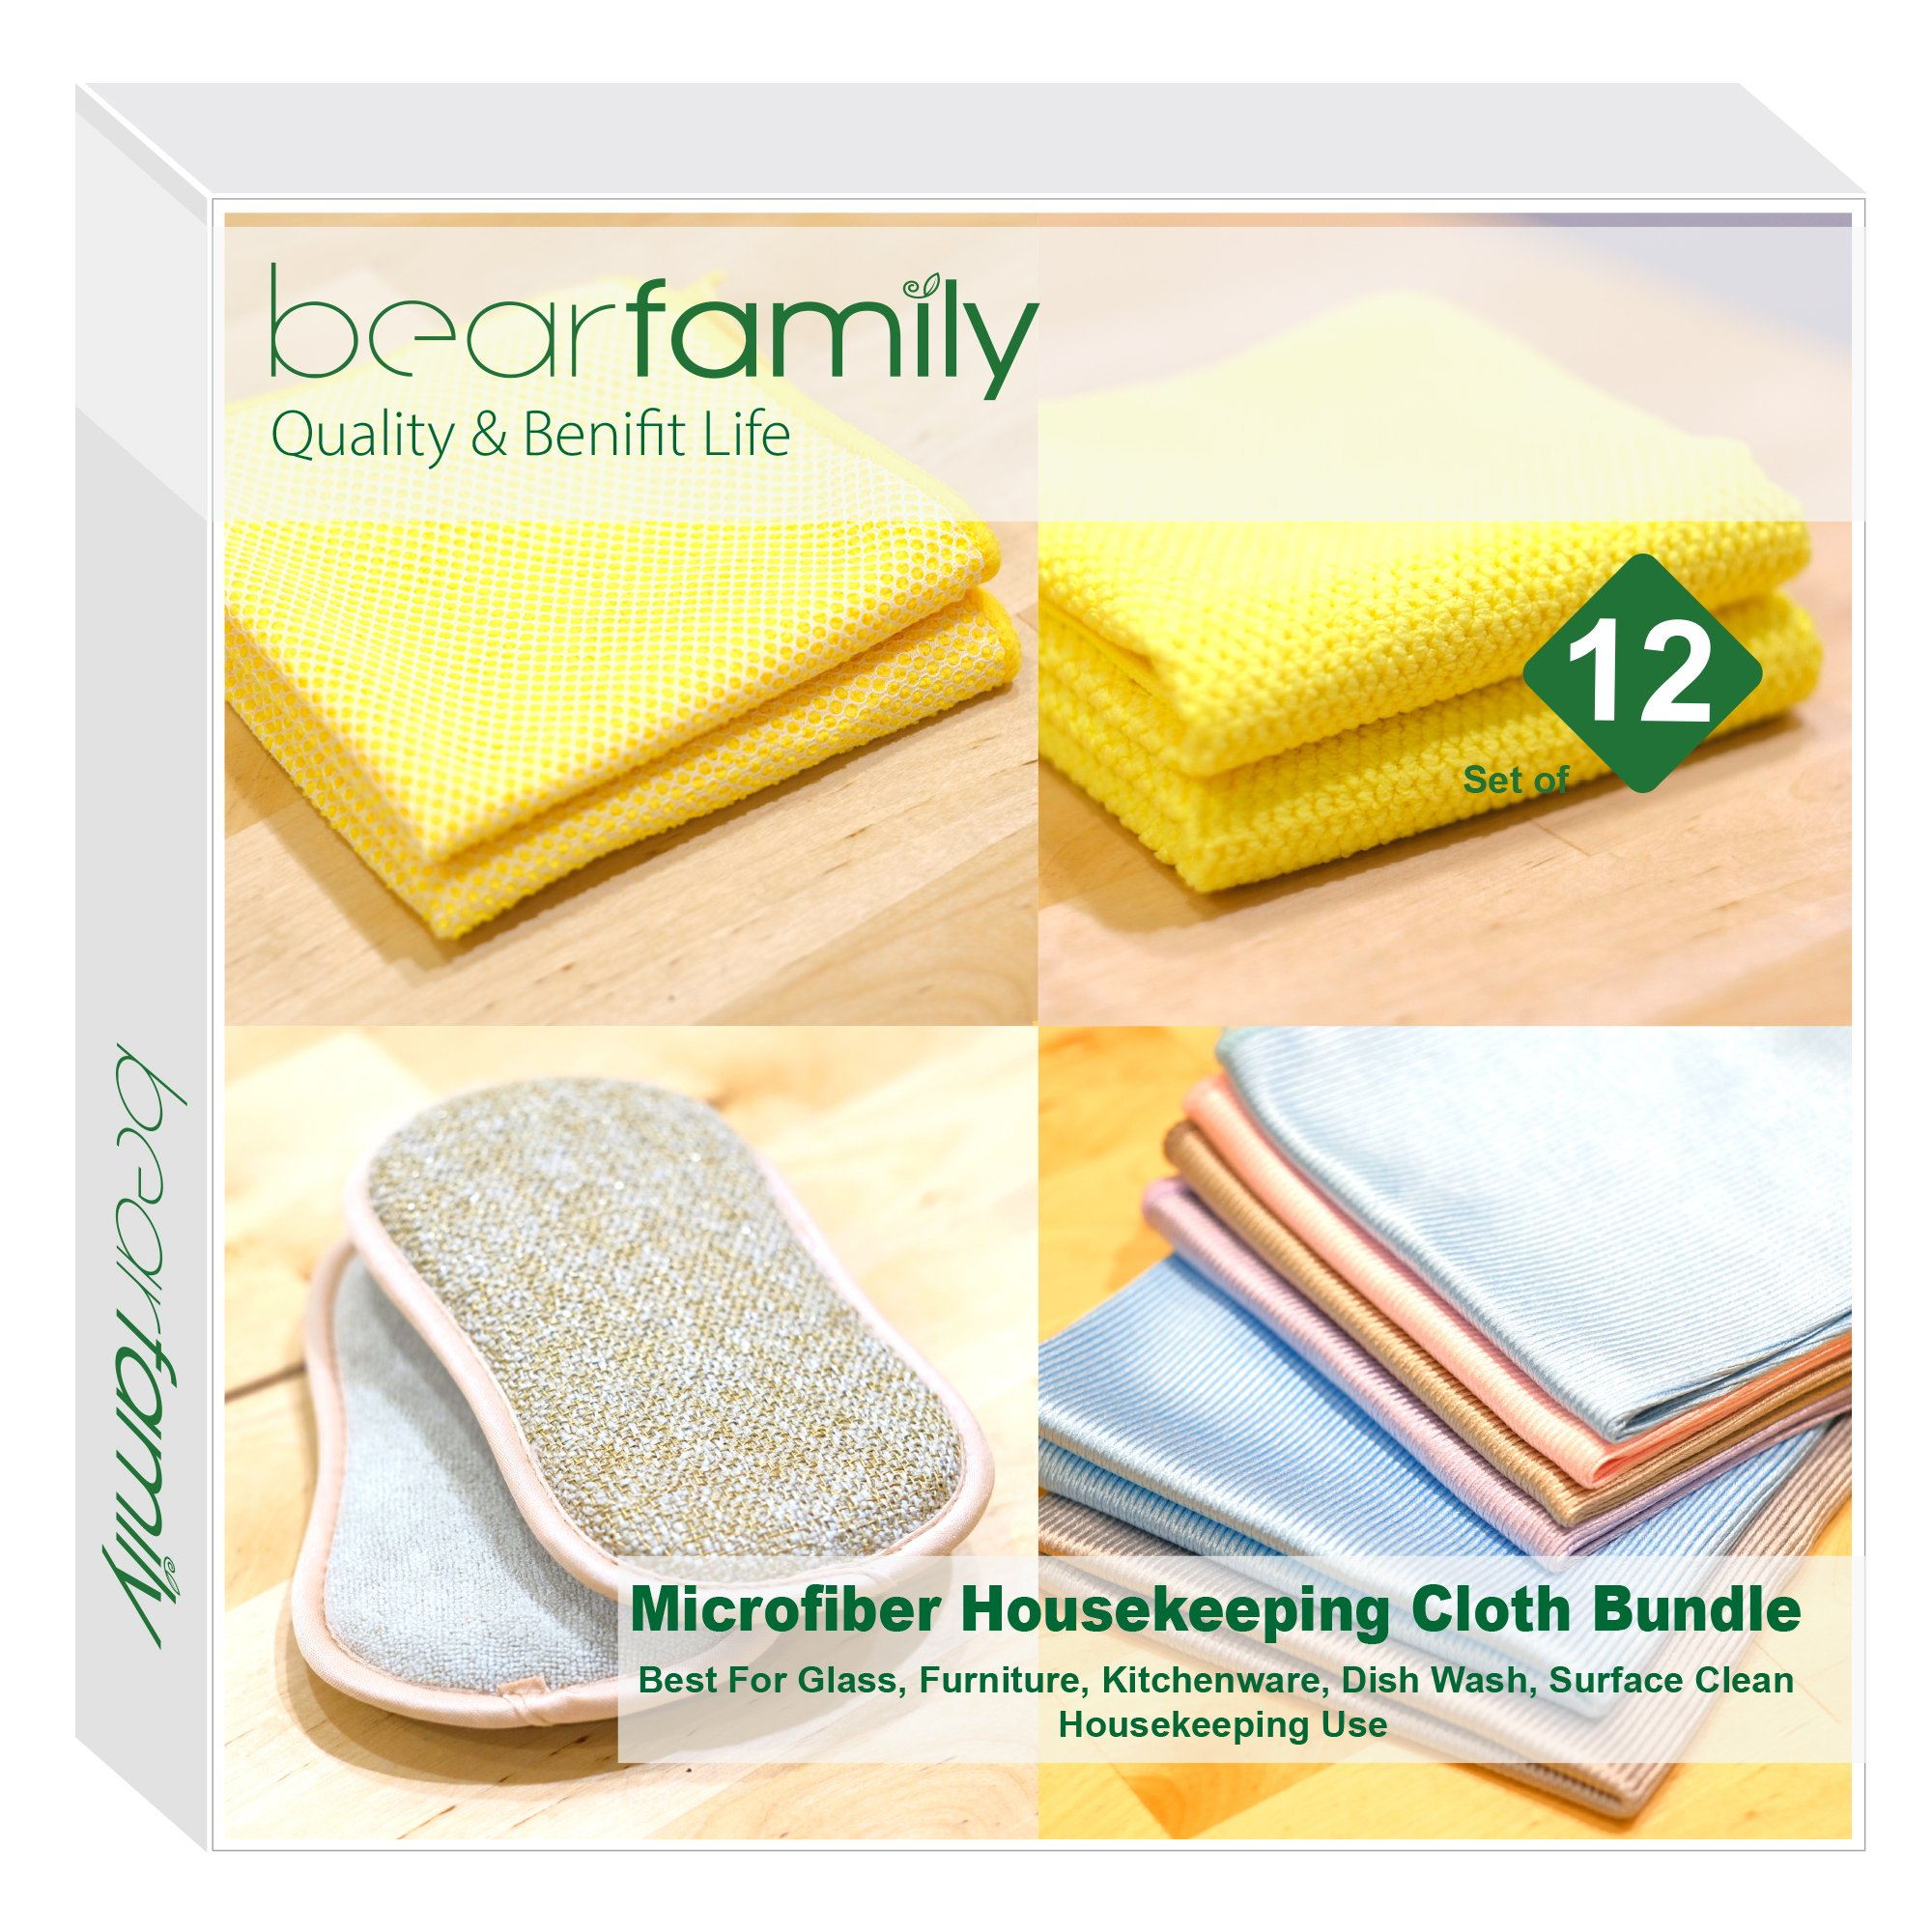 Microfiber Window Cloth / Dish Pad / Kitchen Cloth / Furniture Cloth / Pack of 12 Mix Colors By Bear Family